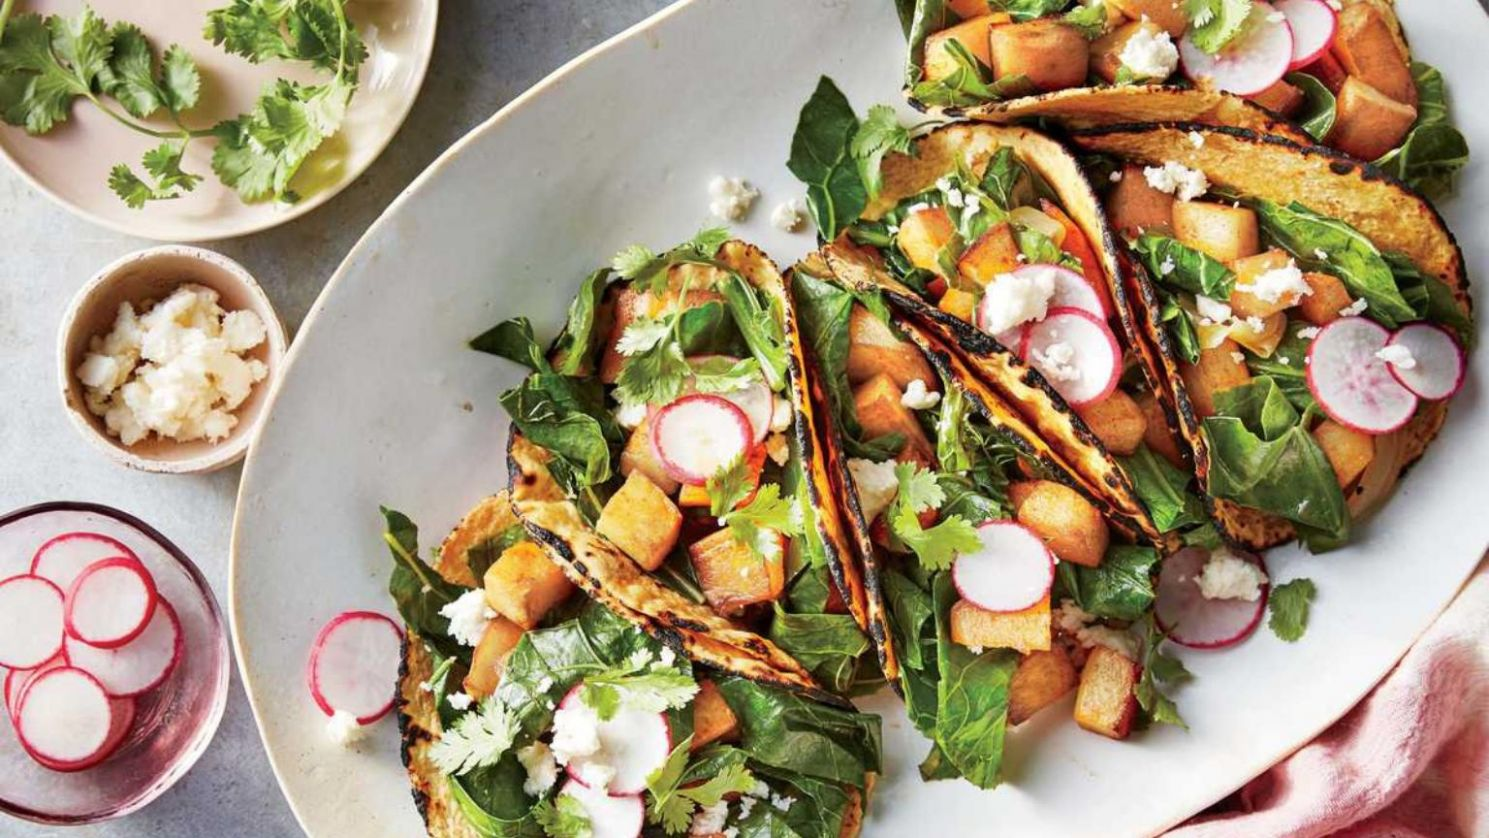 12 Easy Vegetarian Recipes for Busy Weeknights - Recipes Vegetarian Fast